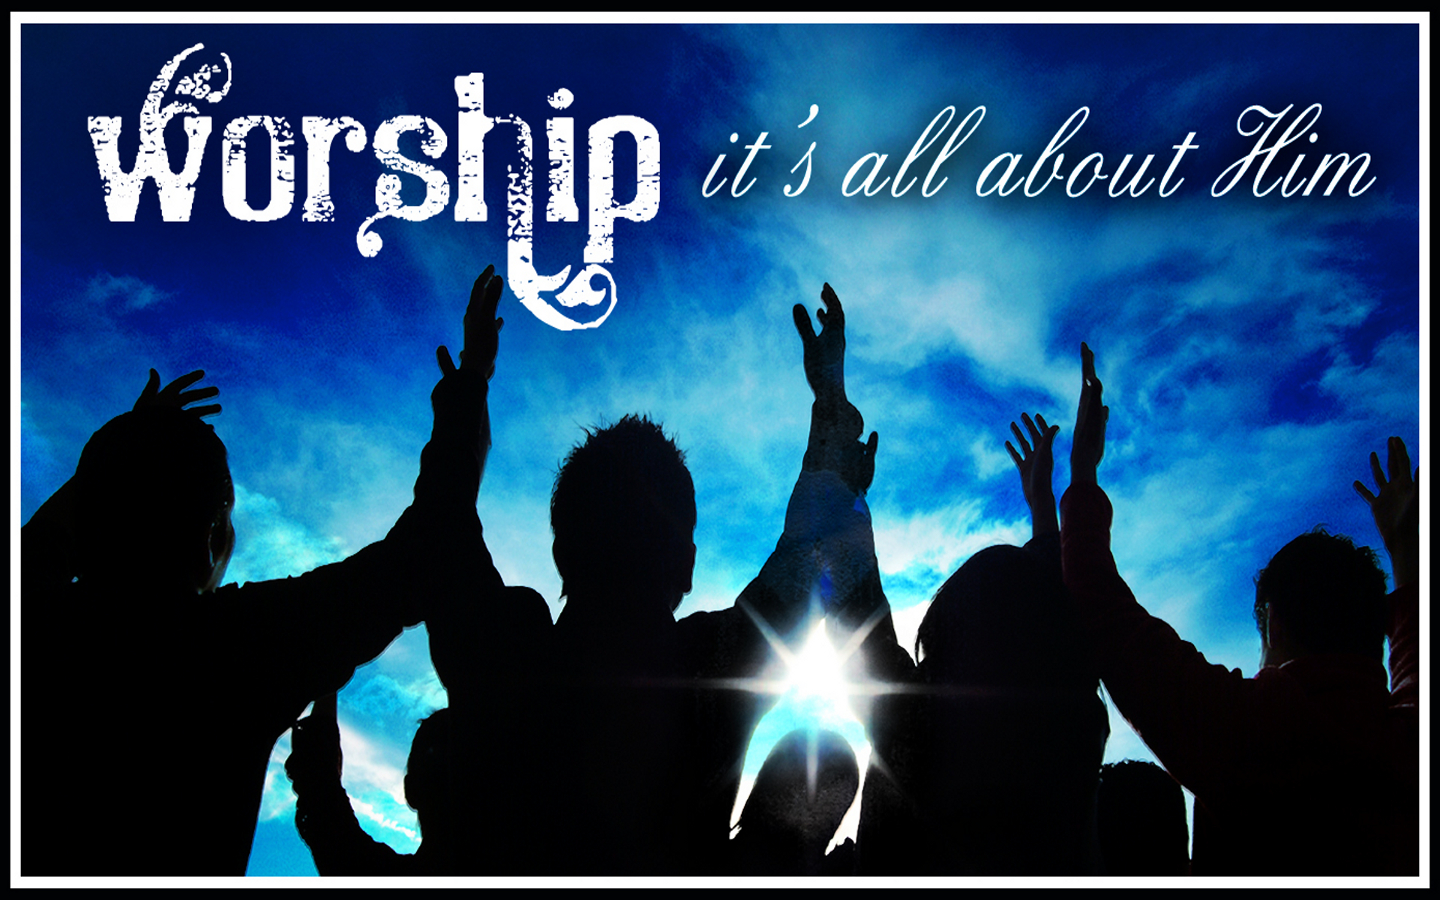 describe how christians would worship god Christian worship happens when we sing to god, whether in church or alone - in our cars or in the shower if our desire is to please the heart of god, it is worship, no matter where the location or how many are involved.